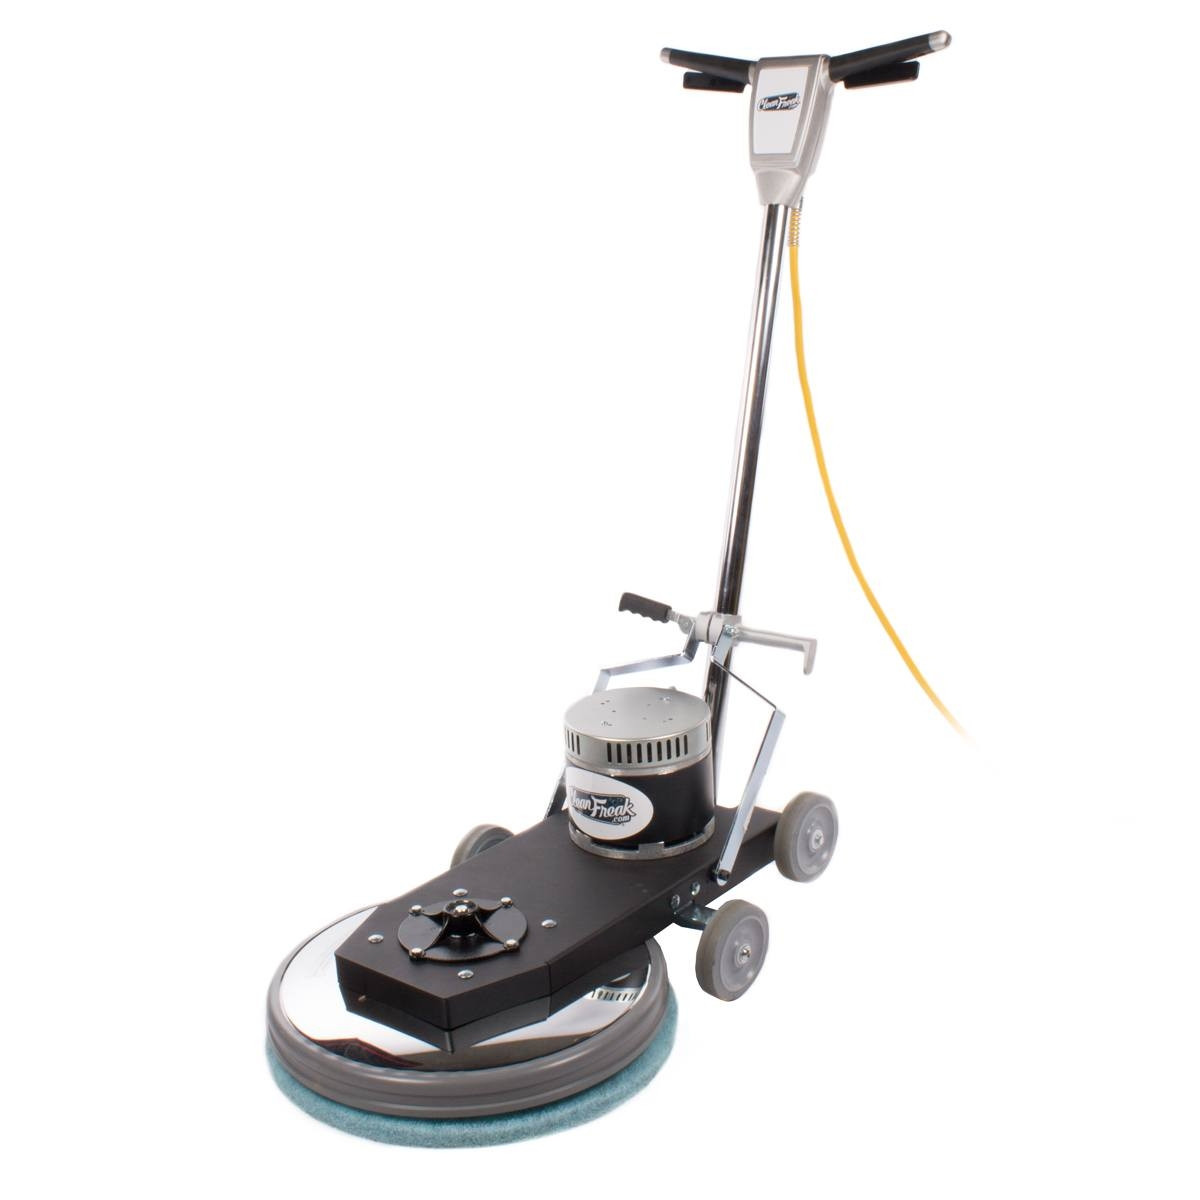 20 Quot High Speed Floor Burnisher Cleanfreak 174 1500 Rpm Machine